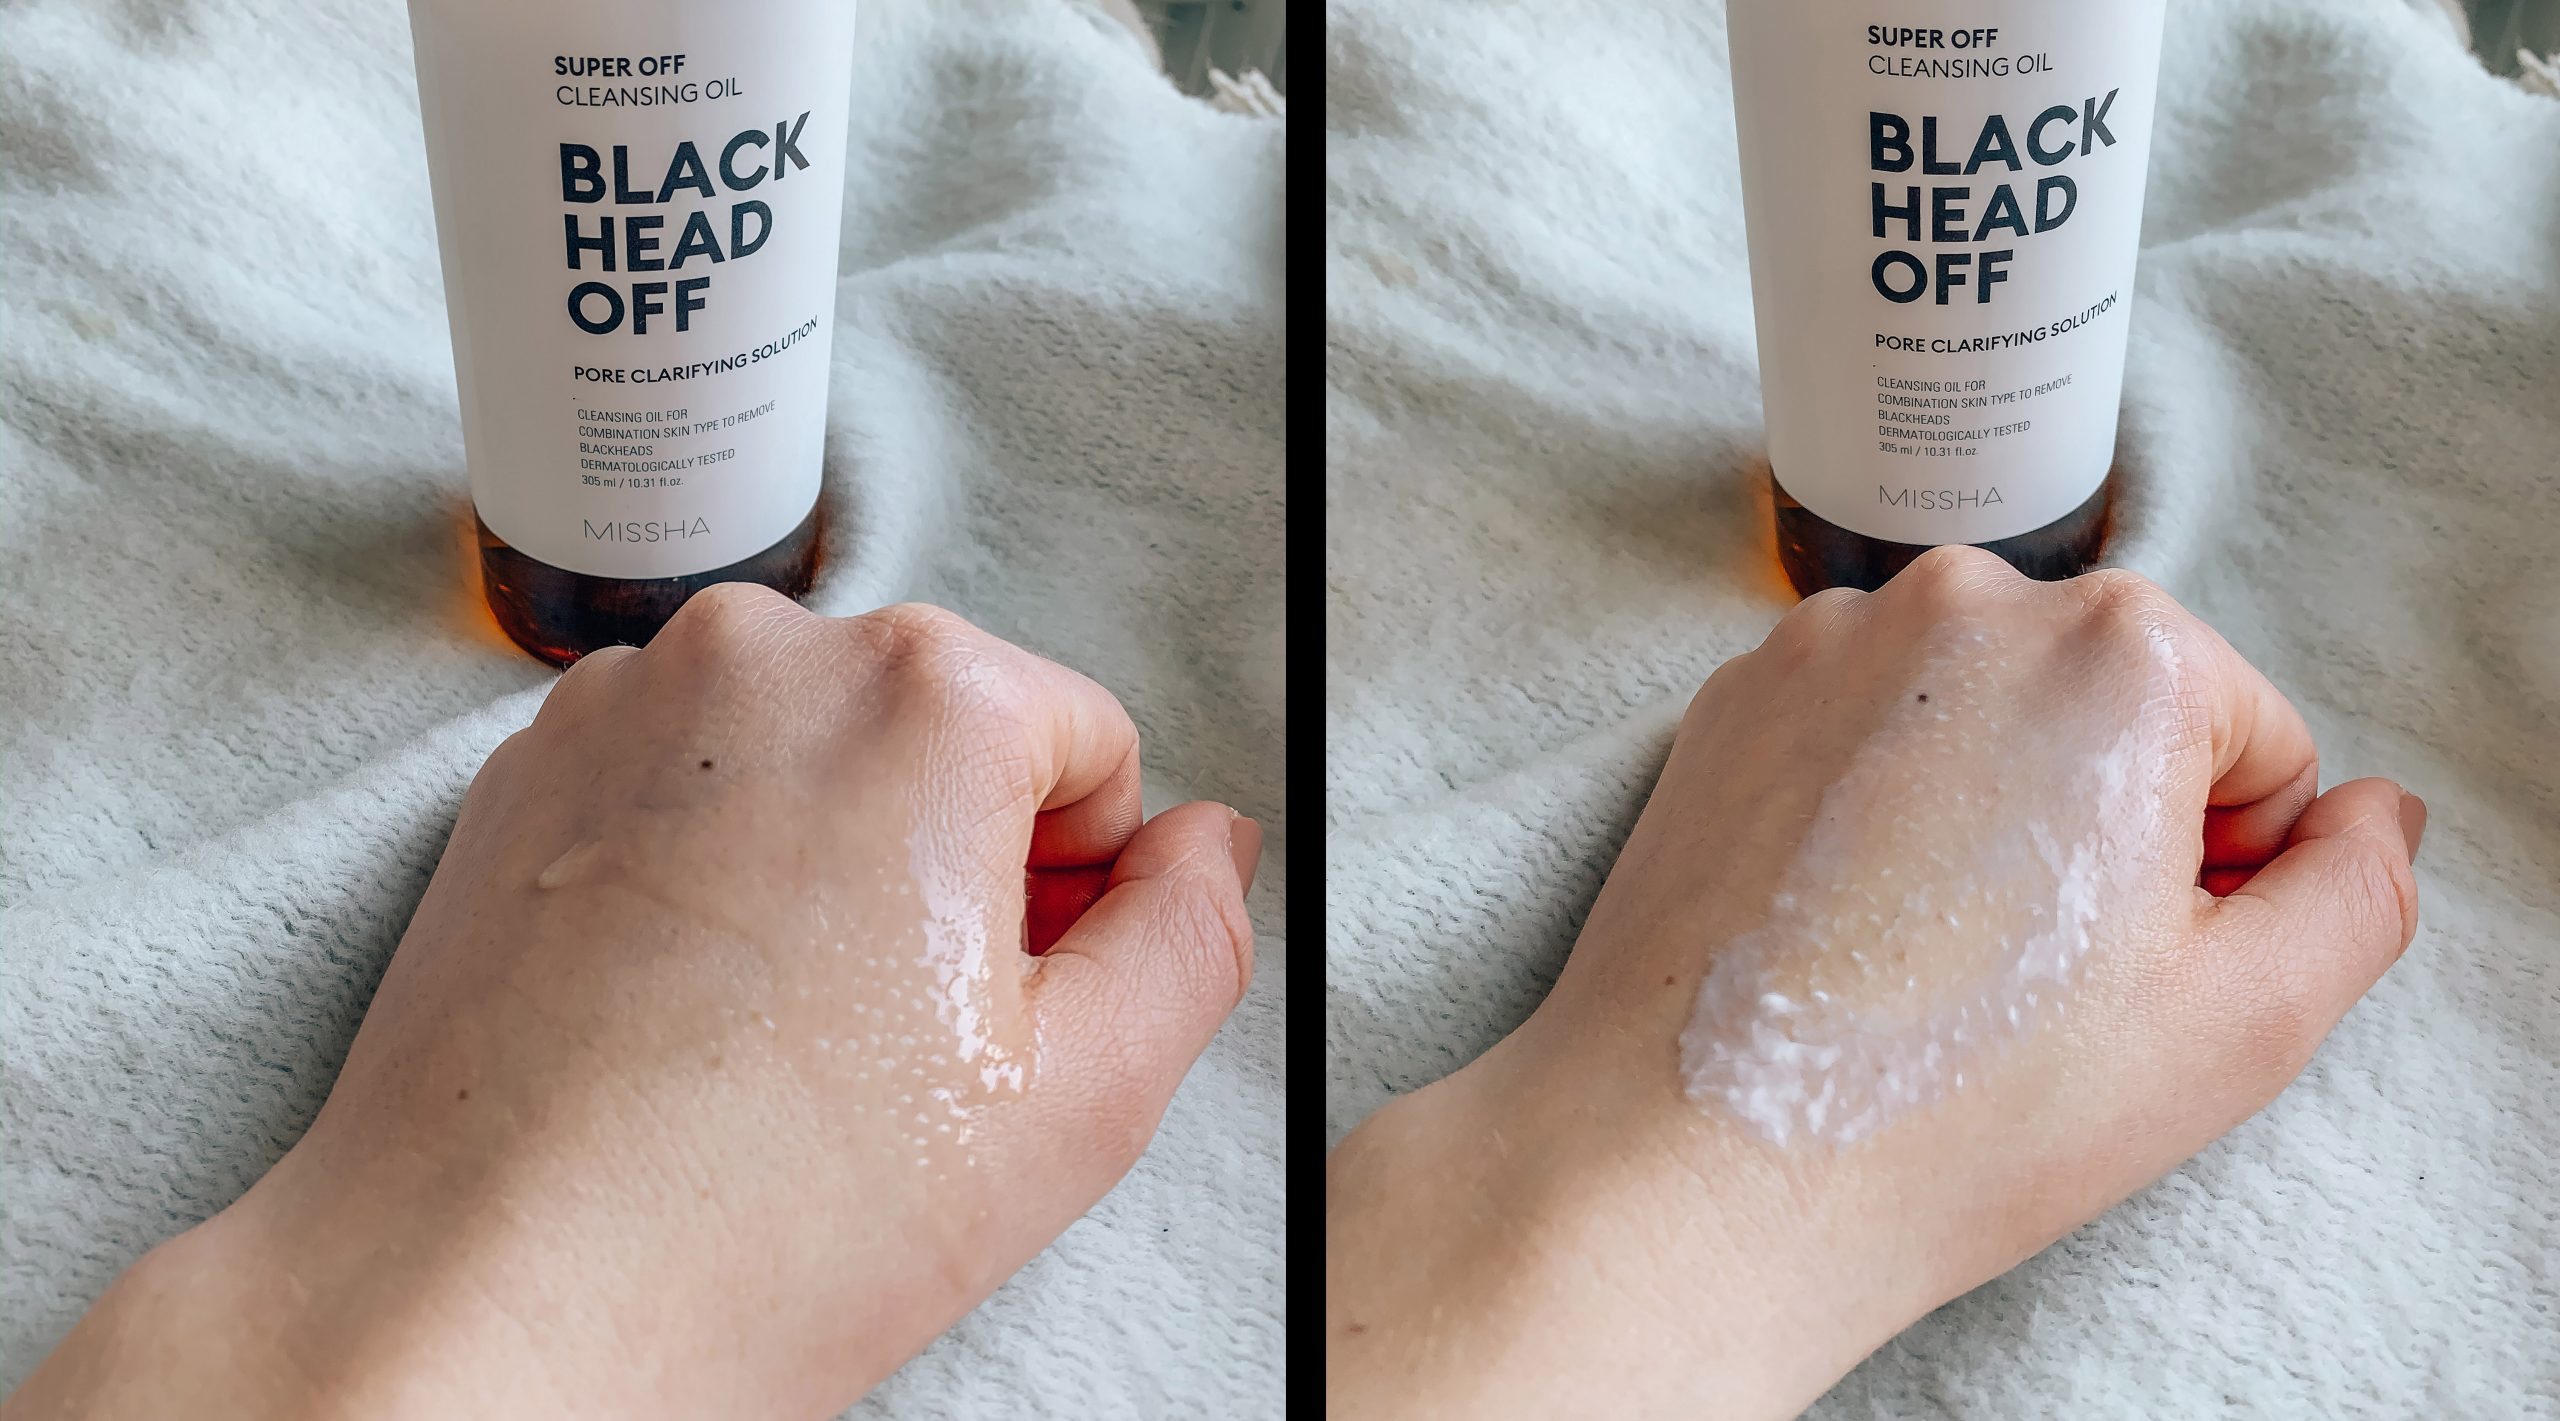 MISSHA Black Head Off Cleansing Oil